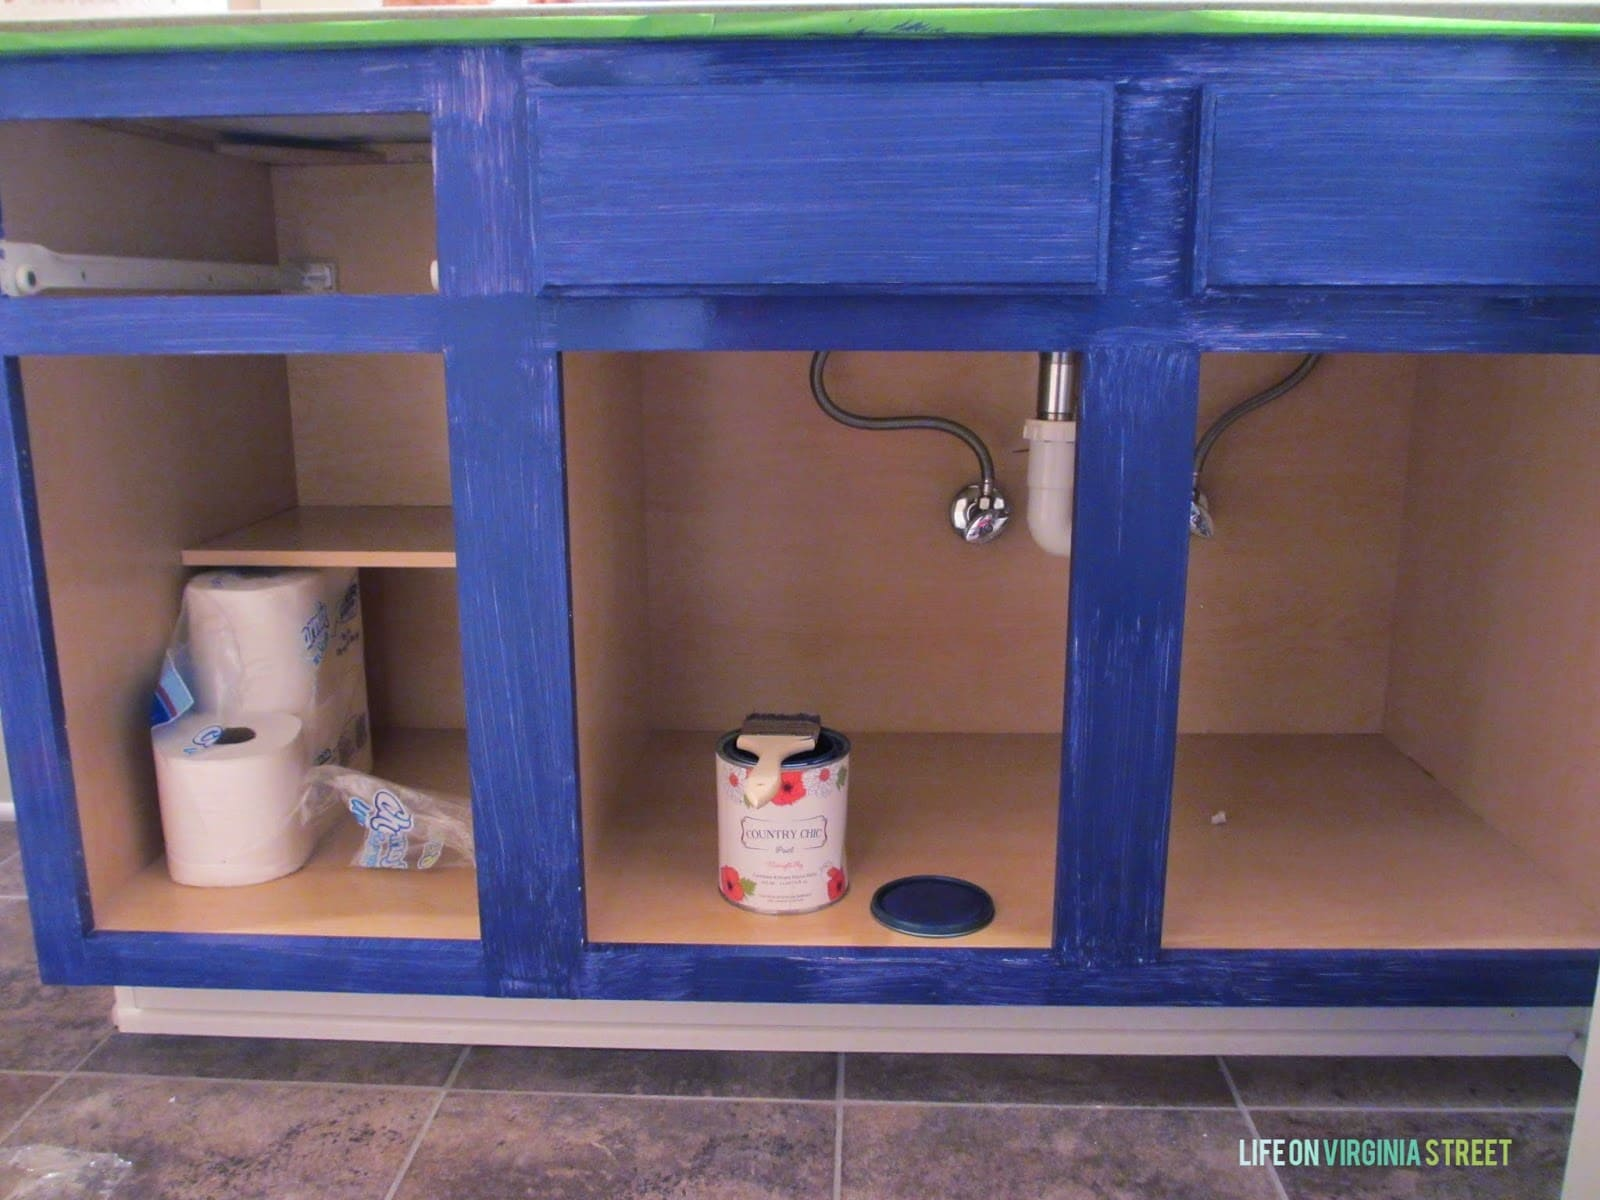 Blue cabinets partway through painting. This is one coat.